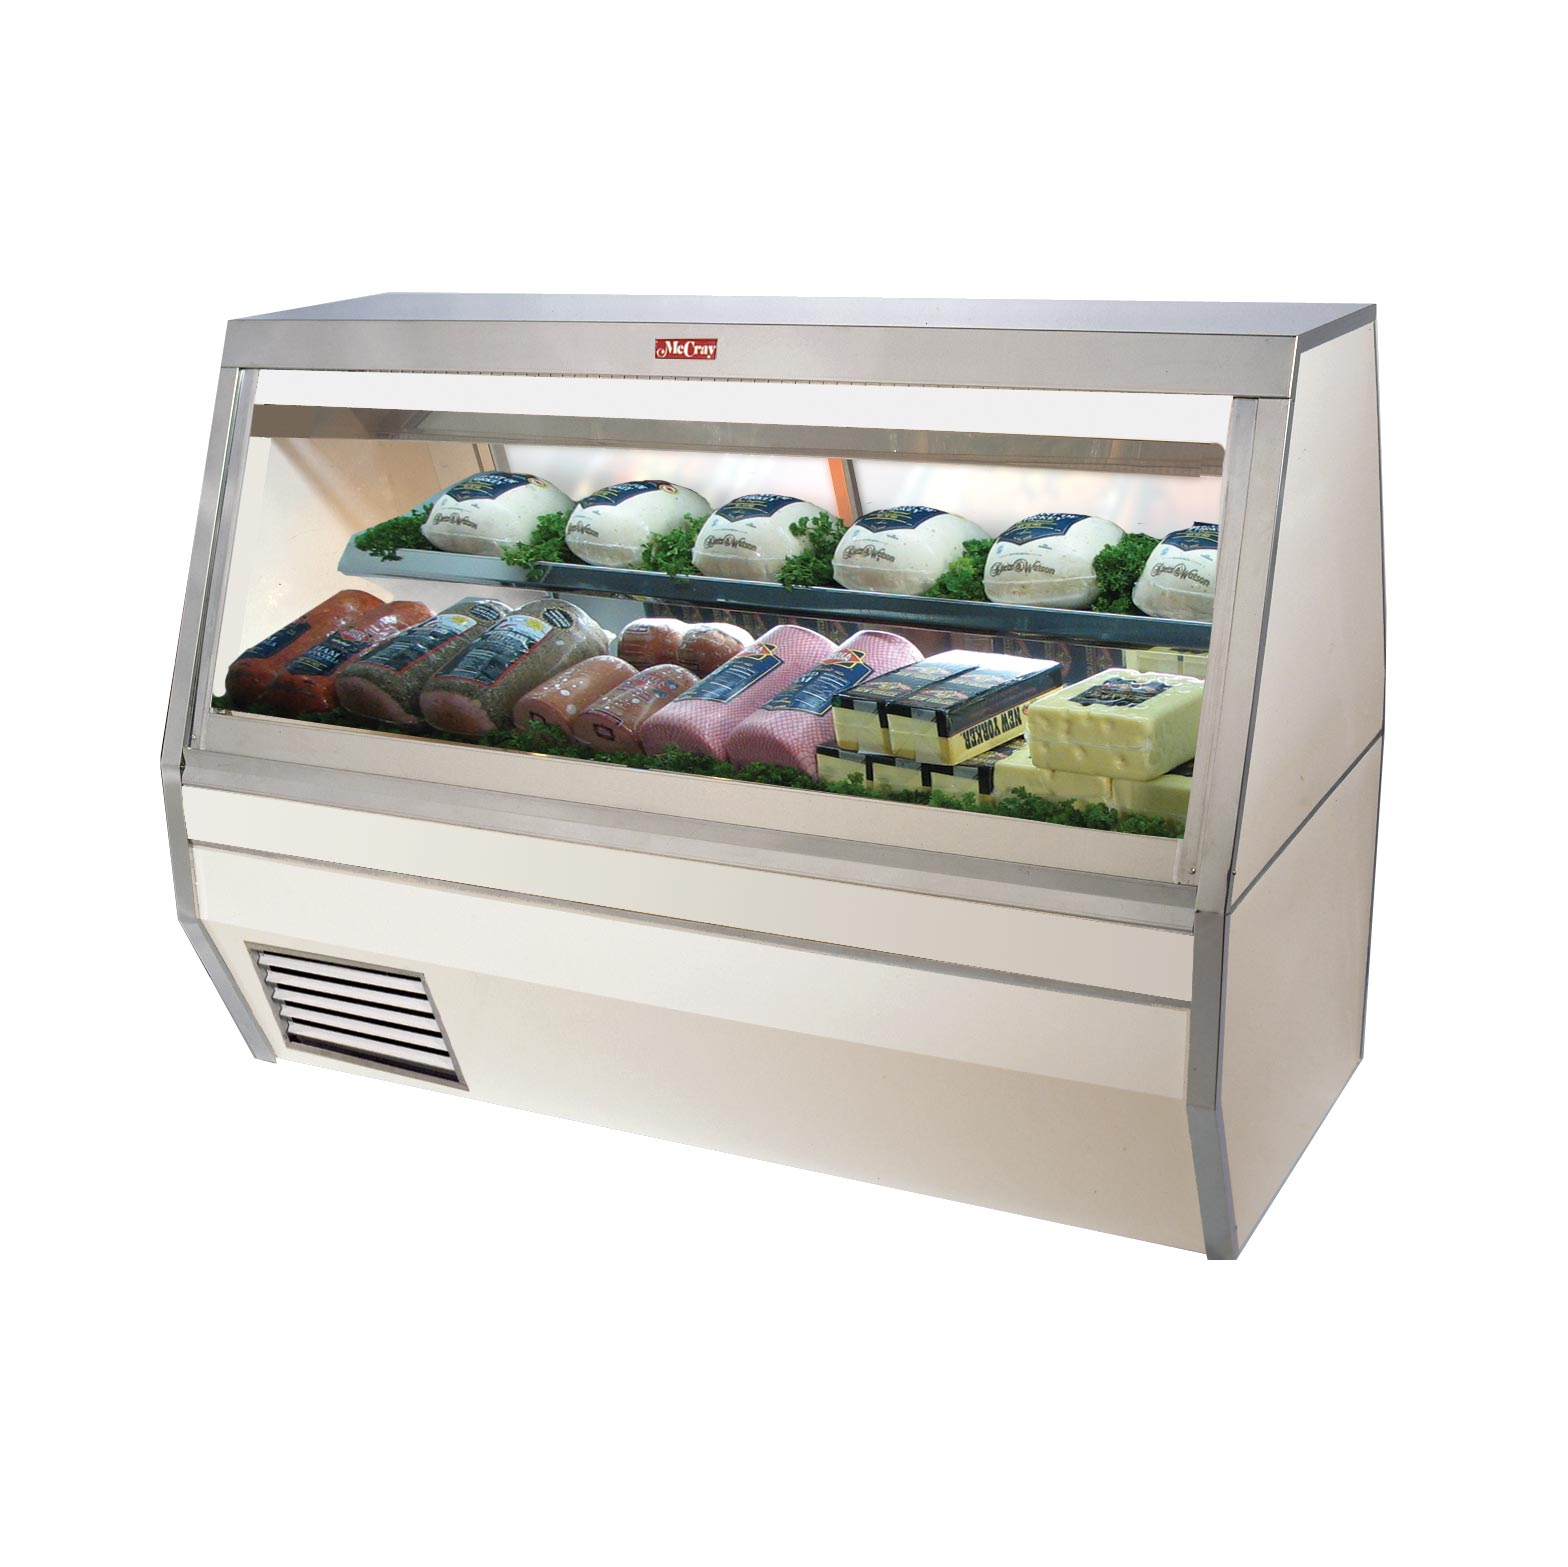 SC-CDS35-4L-BE-LED Howard-McCray display case, refrigerated deli